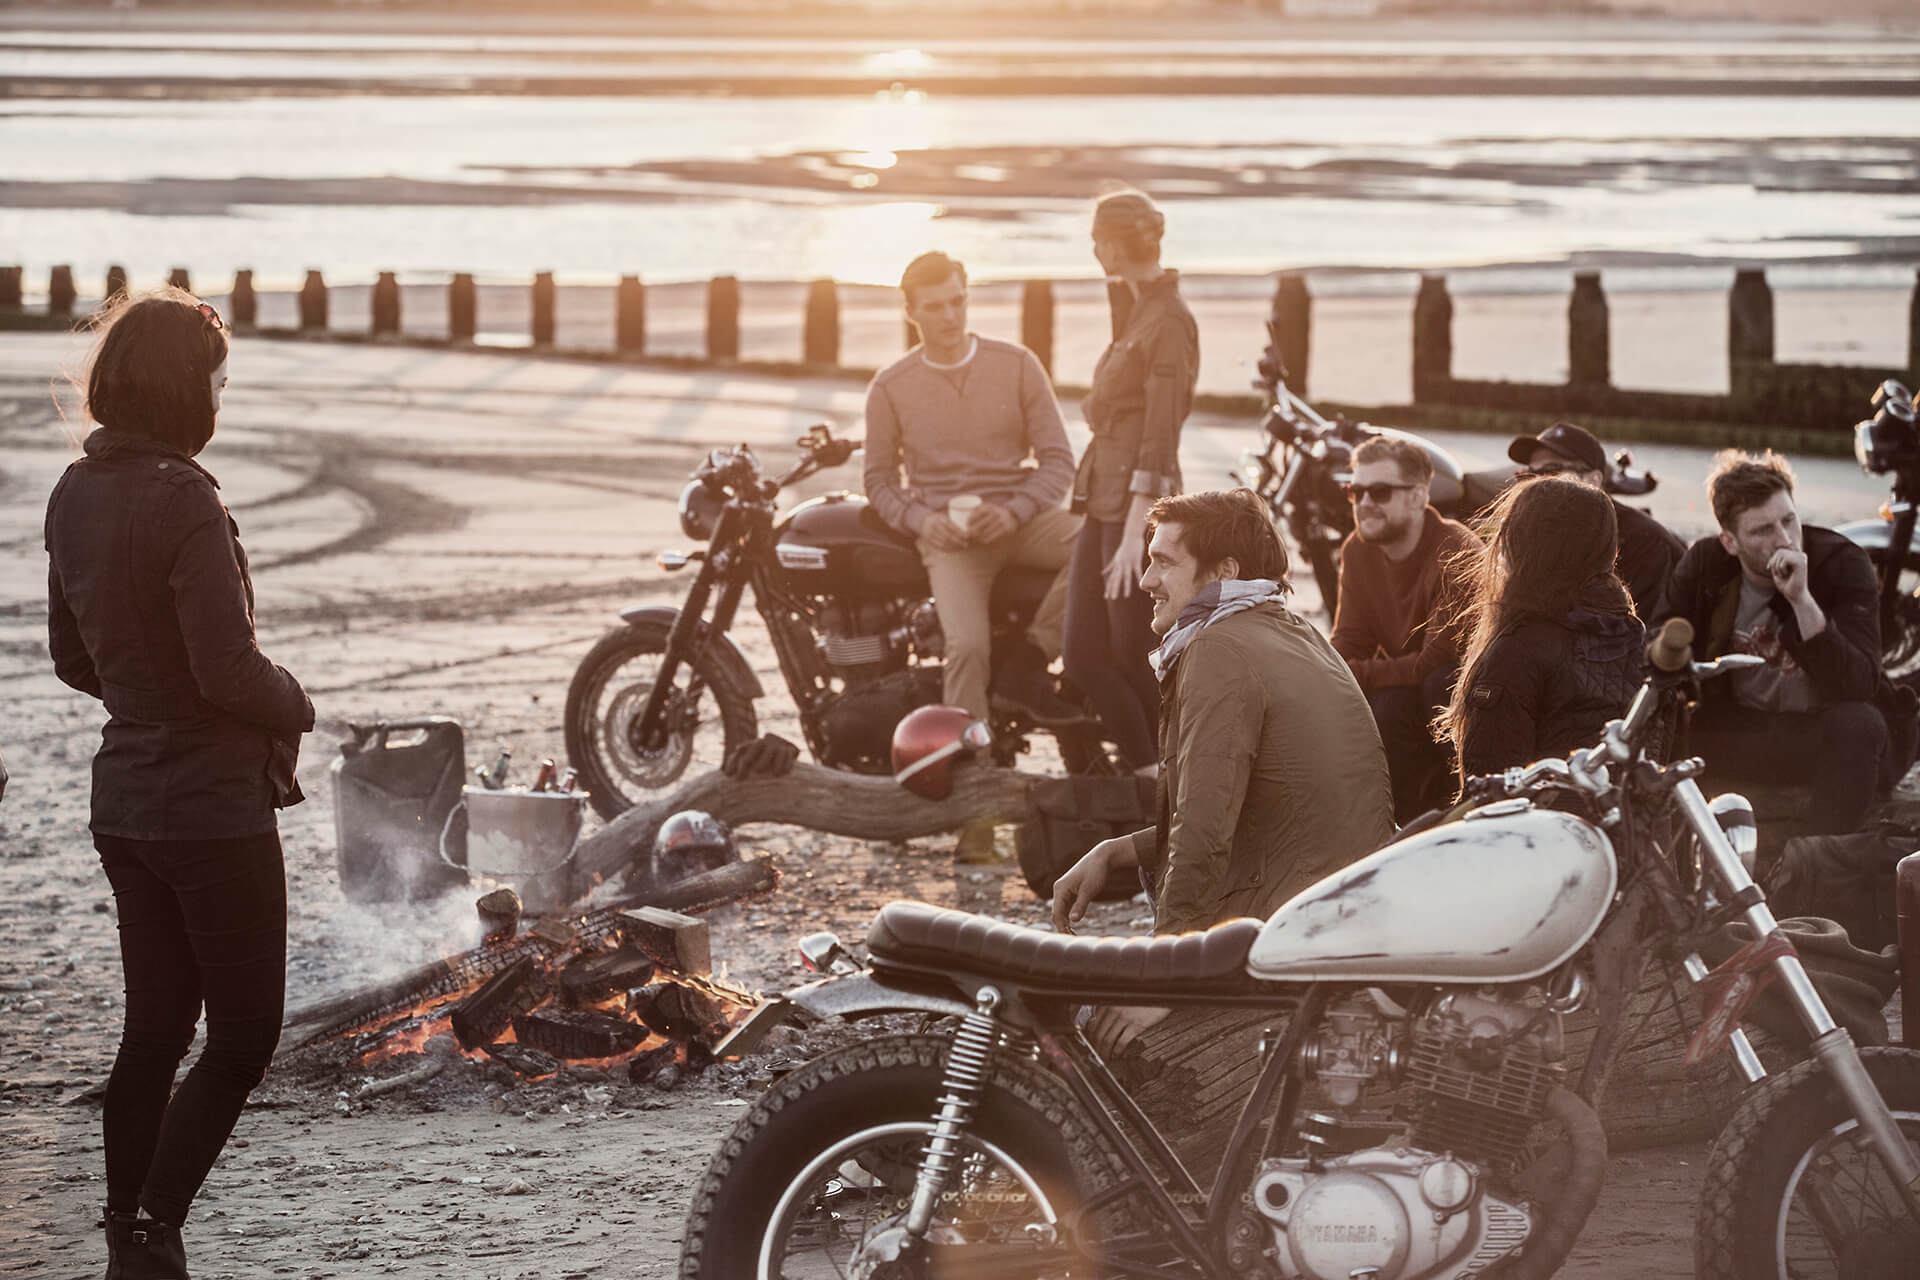 Barbour, Barbour International, Fashion, Clothes, Agency, Photography, Film, London, Sunset, WeAreShuffle, Bikers, Camp fire, beach, sea, production, marketing, ride to the sun